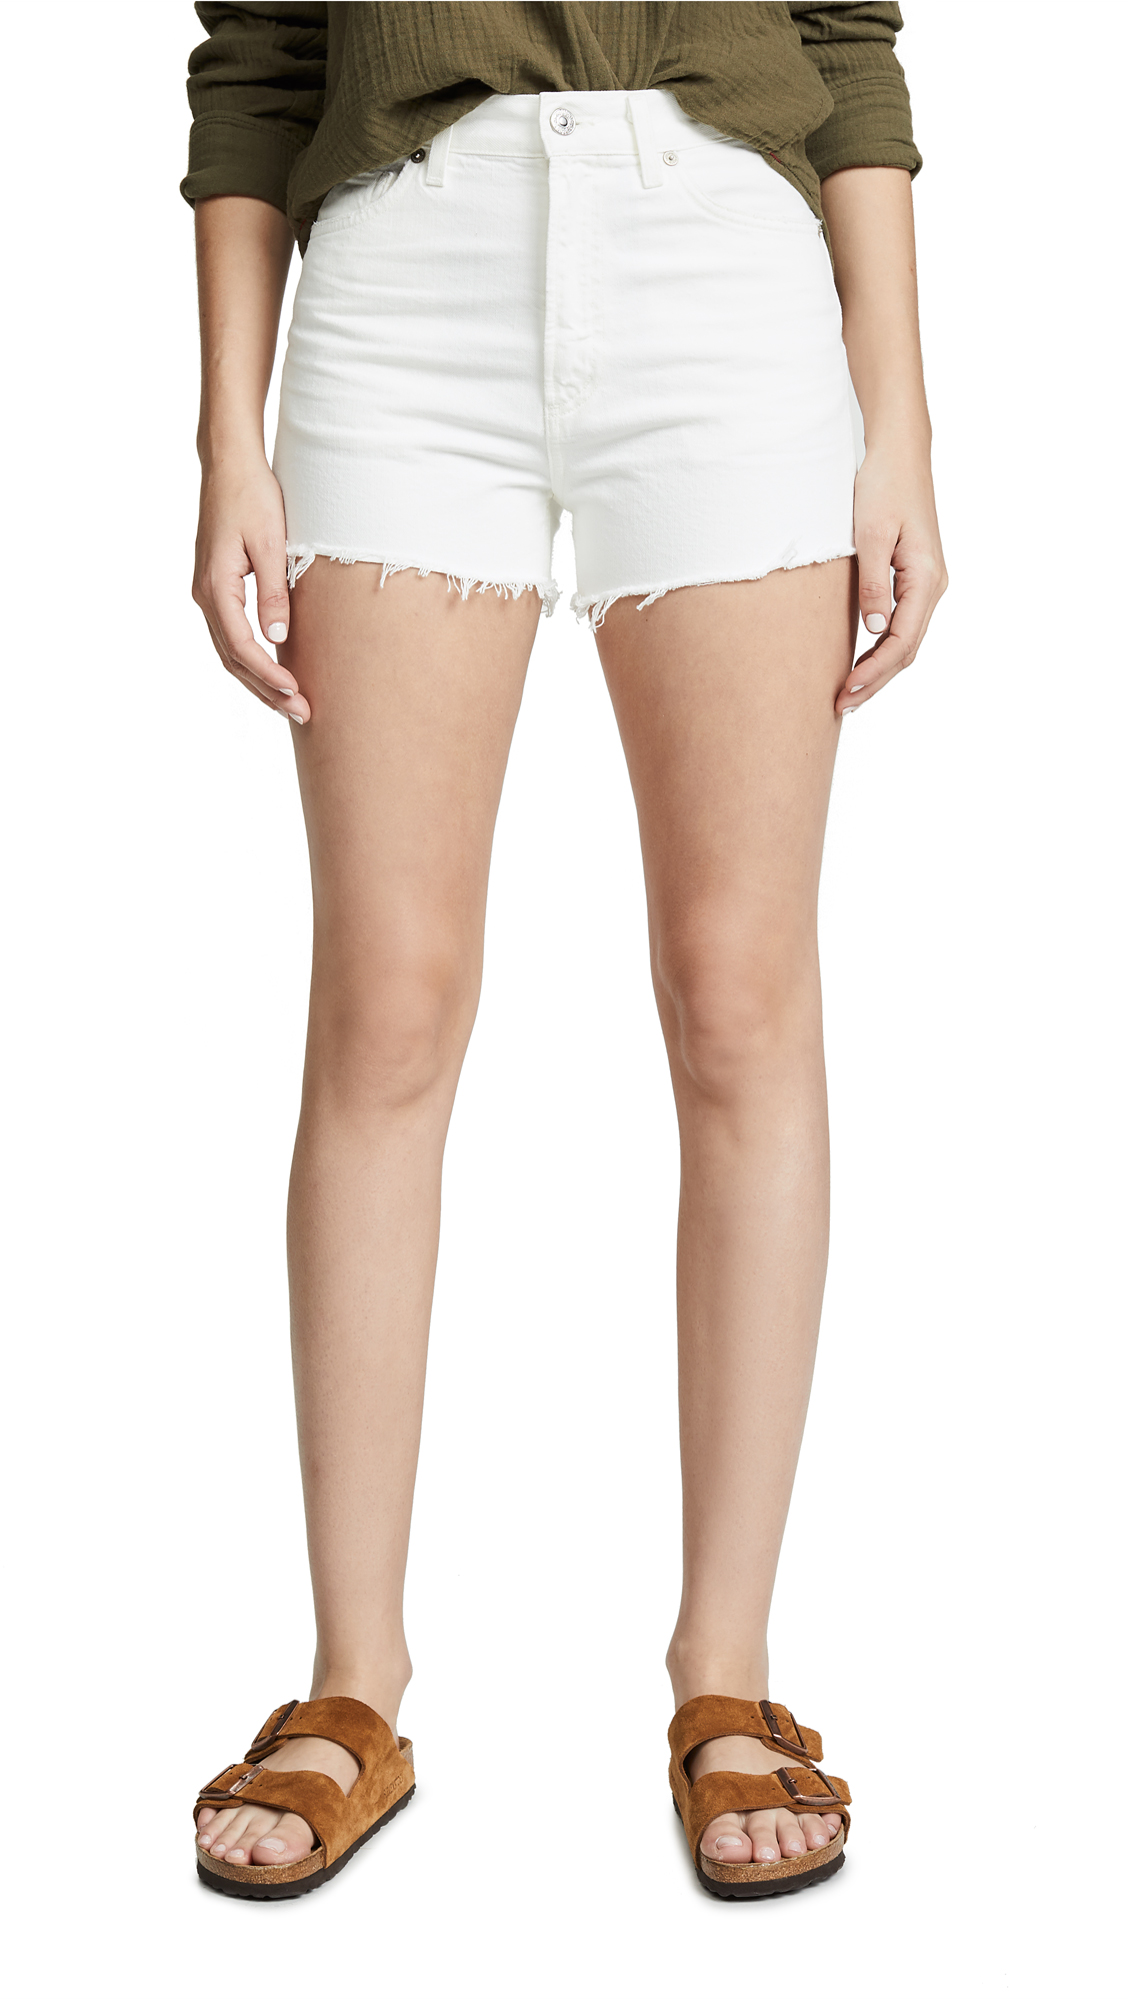 Citizens of Humanity Kristen High Rise Shorts - Fresco